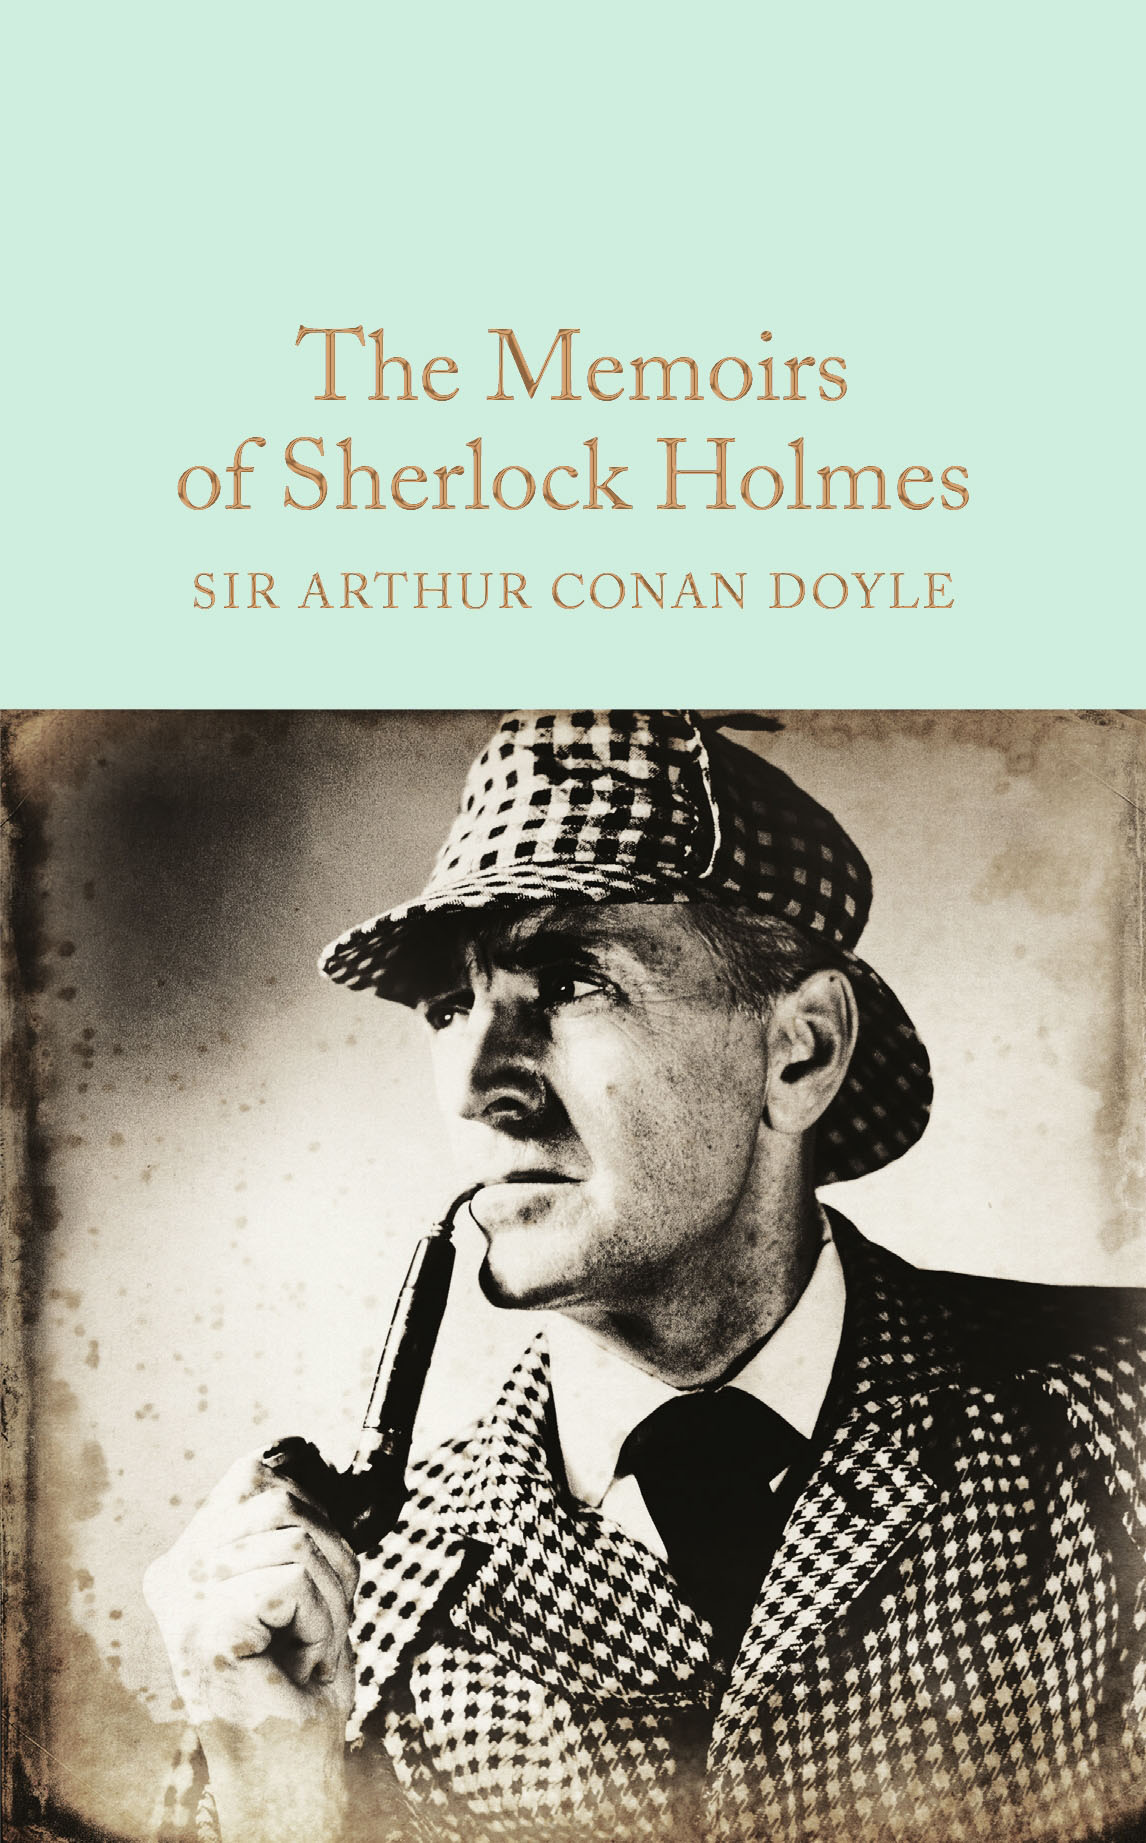 The Memoirs of Sherlock Holmes sherlock holmes complete short stories